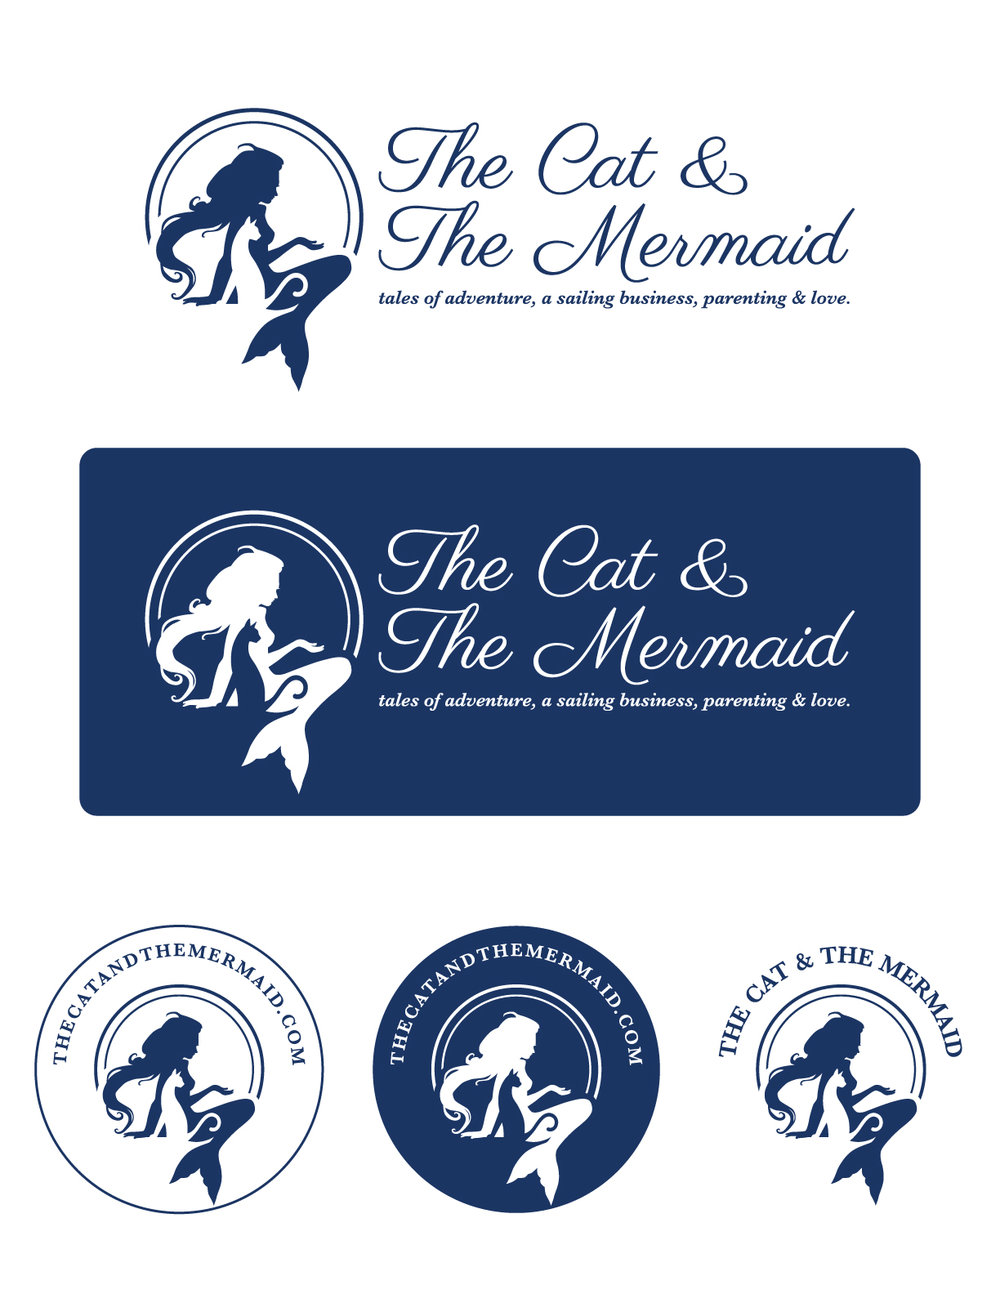 The-Cat-&-The-Mermaid_AllFiles.jpg